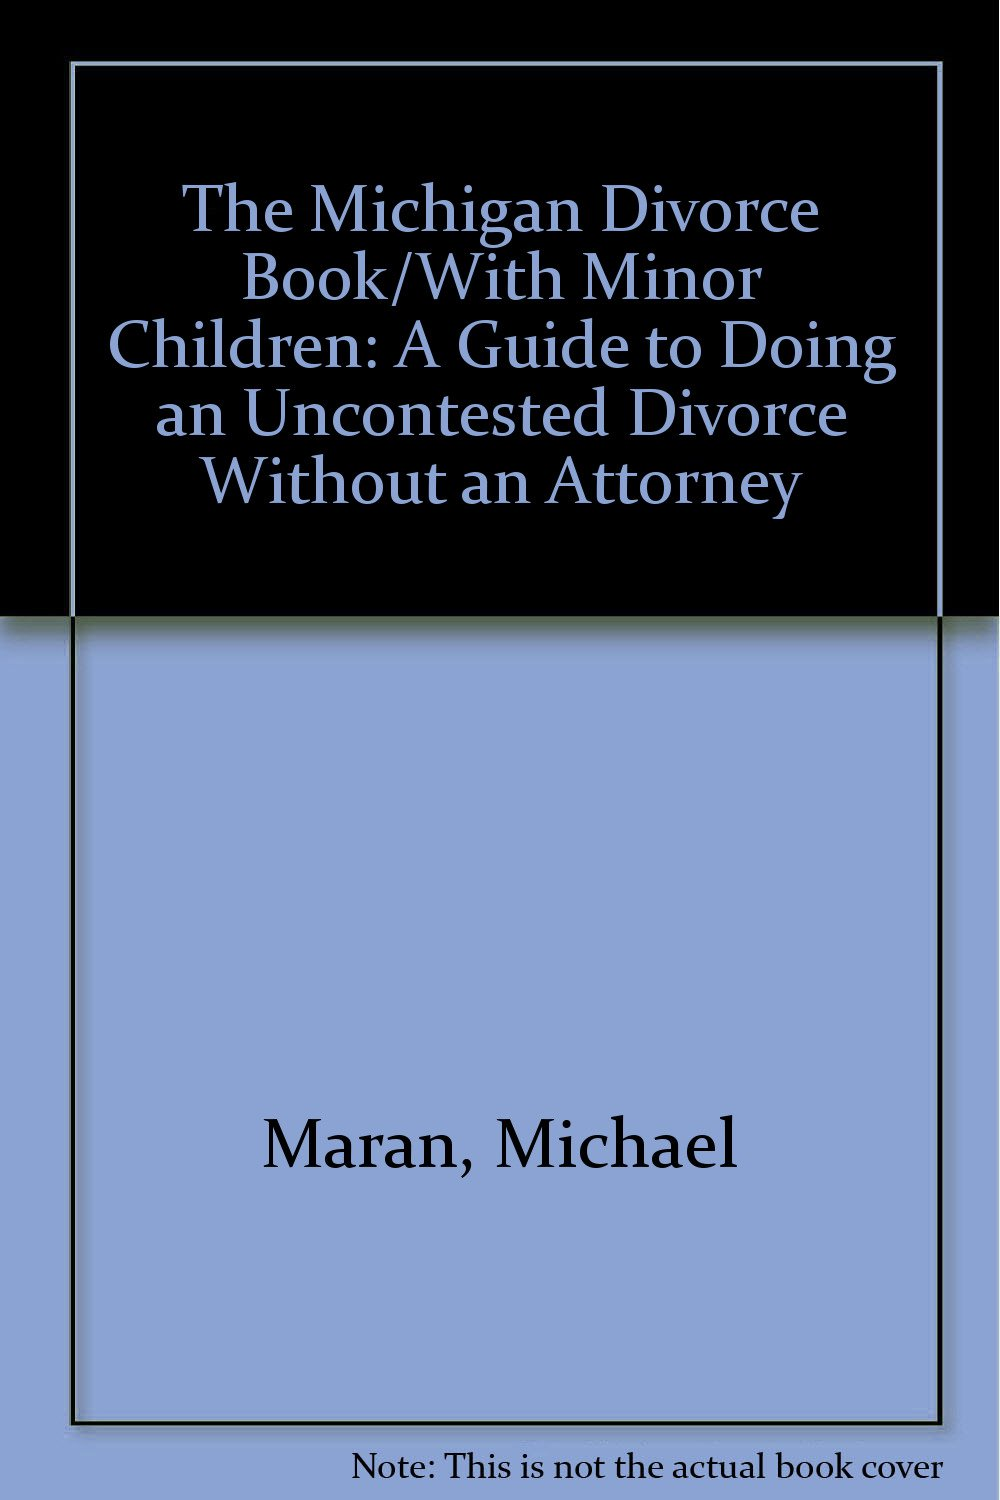 The michigan divorce bookwith minor children a guide to doing an the michigan divorce bookwith minor children a guide to doing an uncontested divorce without an attorney michael maran 9780936343082 amazon books solutioingenieria Image collections